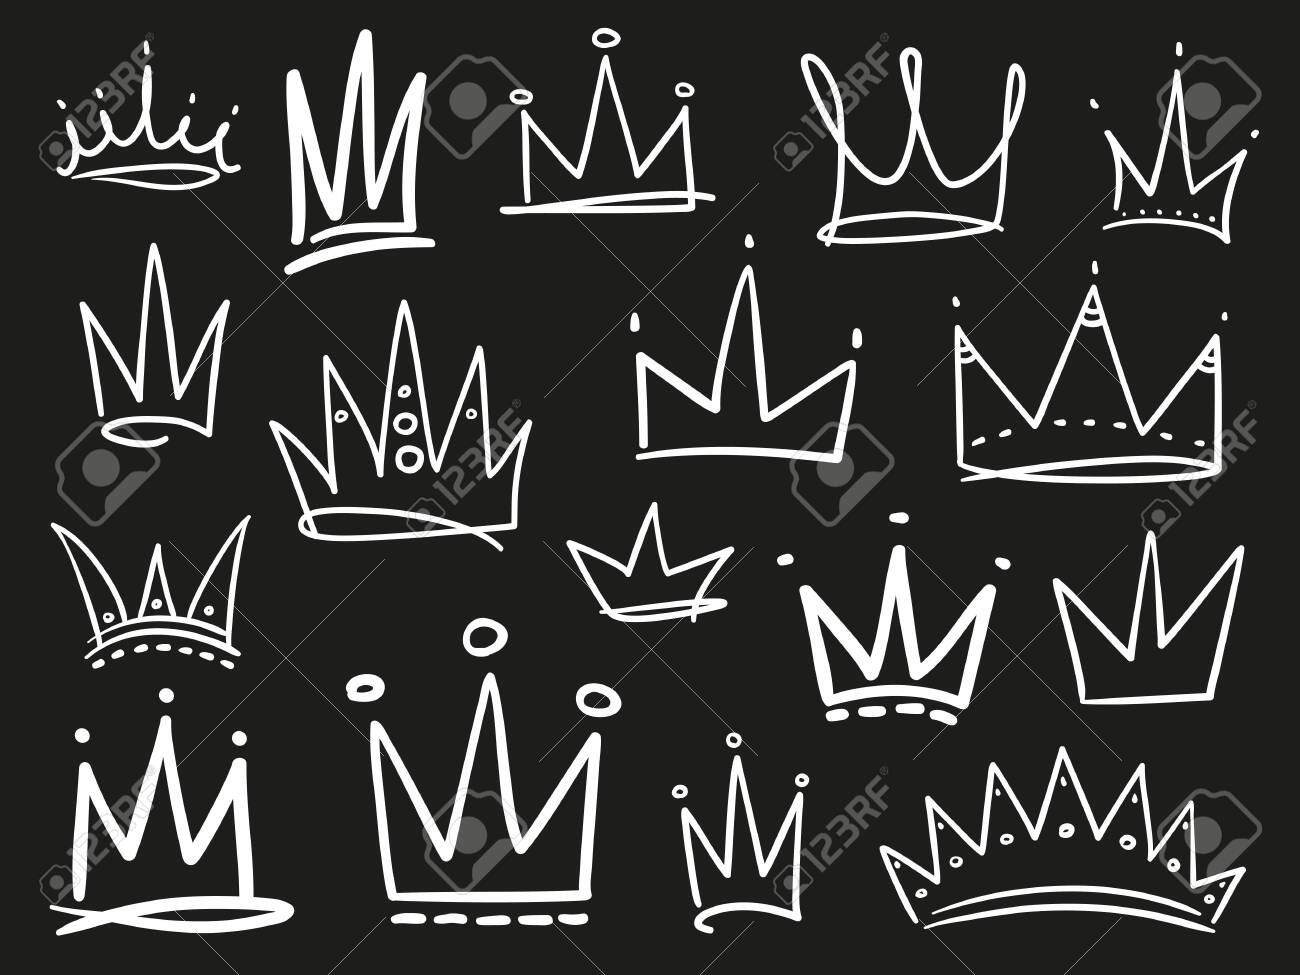 Collection of crowns on black. Hand drawn abstract objects. Line art. Black and white illustration - 124503837